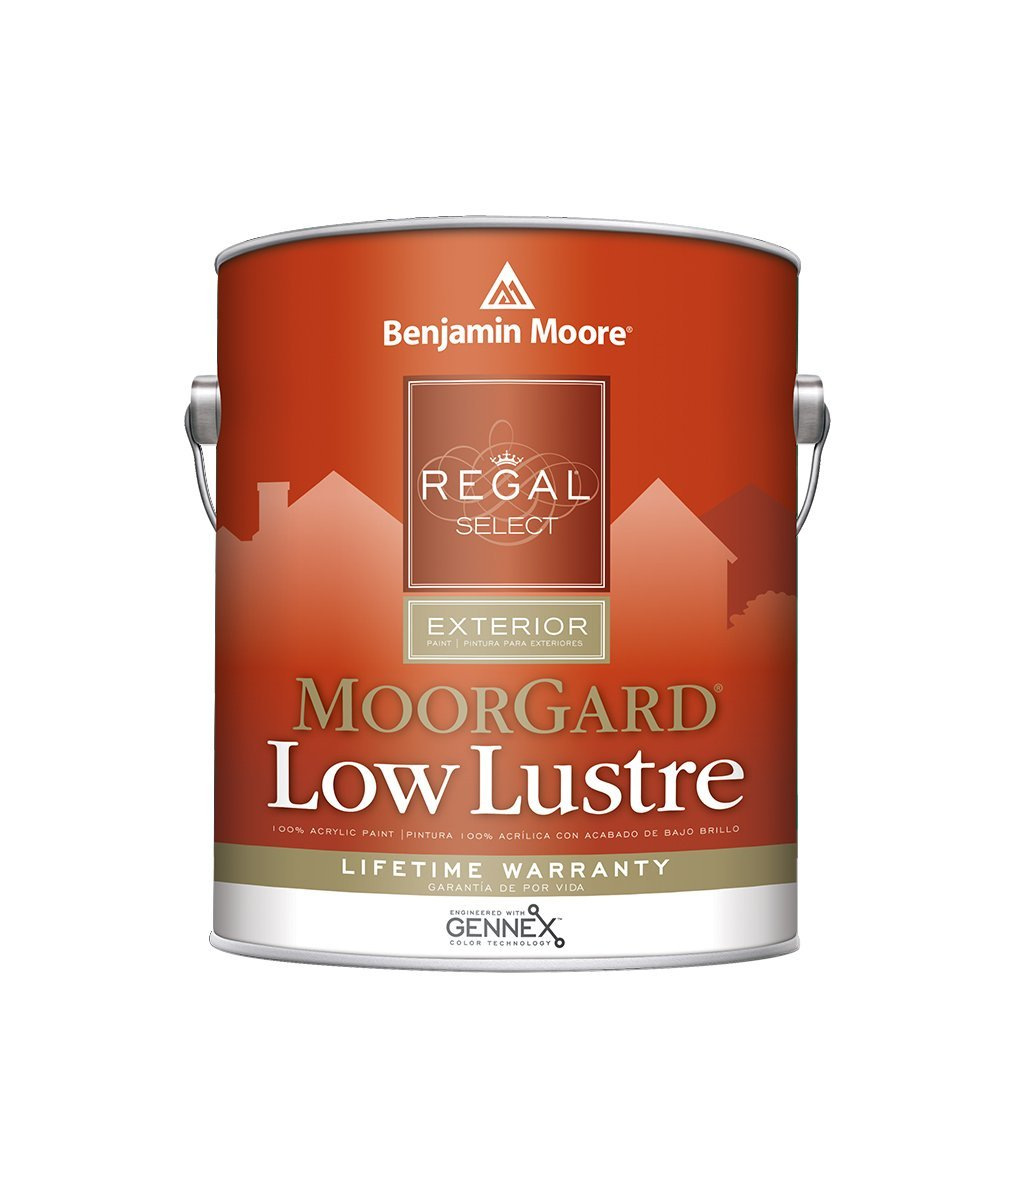 Benjamin Moore Regal Select Low Lustre Exterior Paint available at Mallory Paint Stores